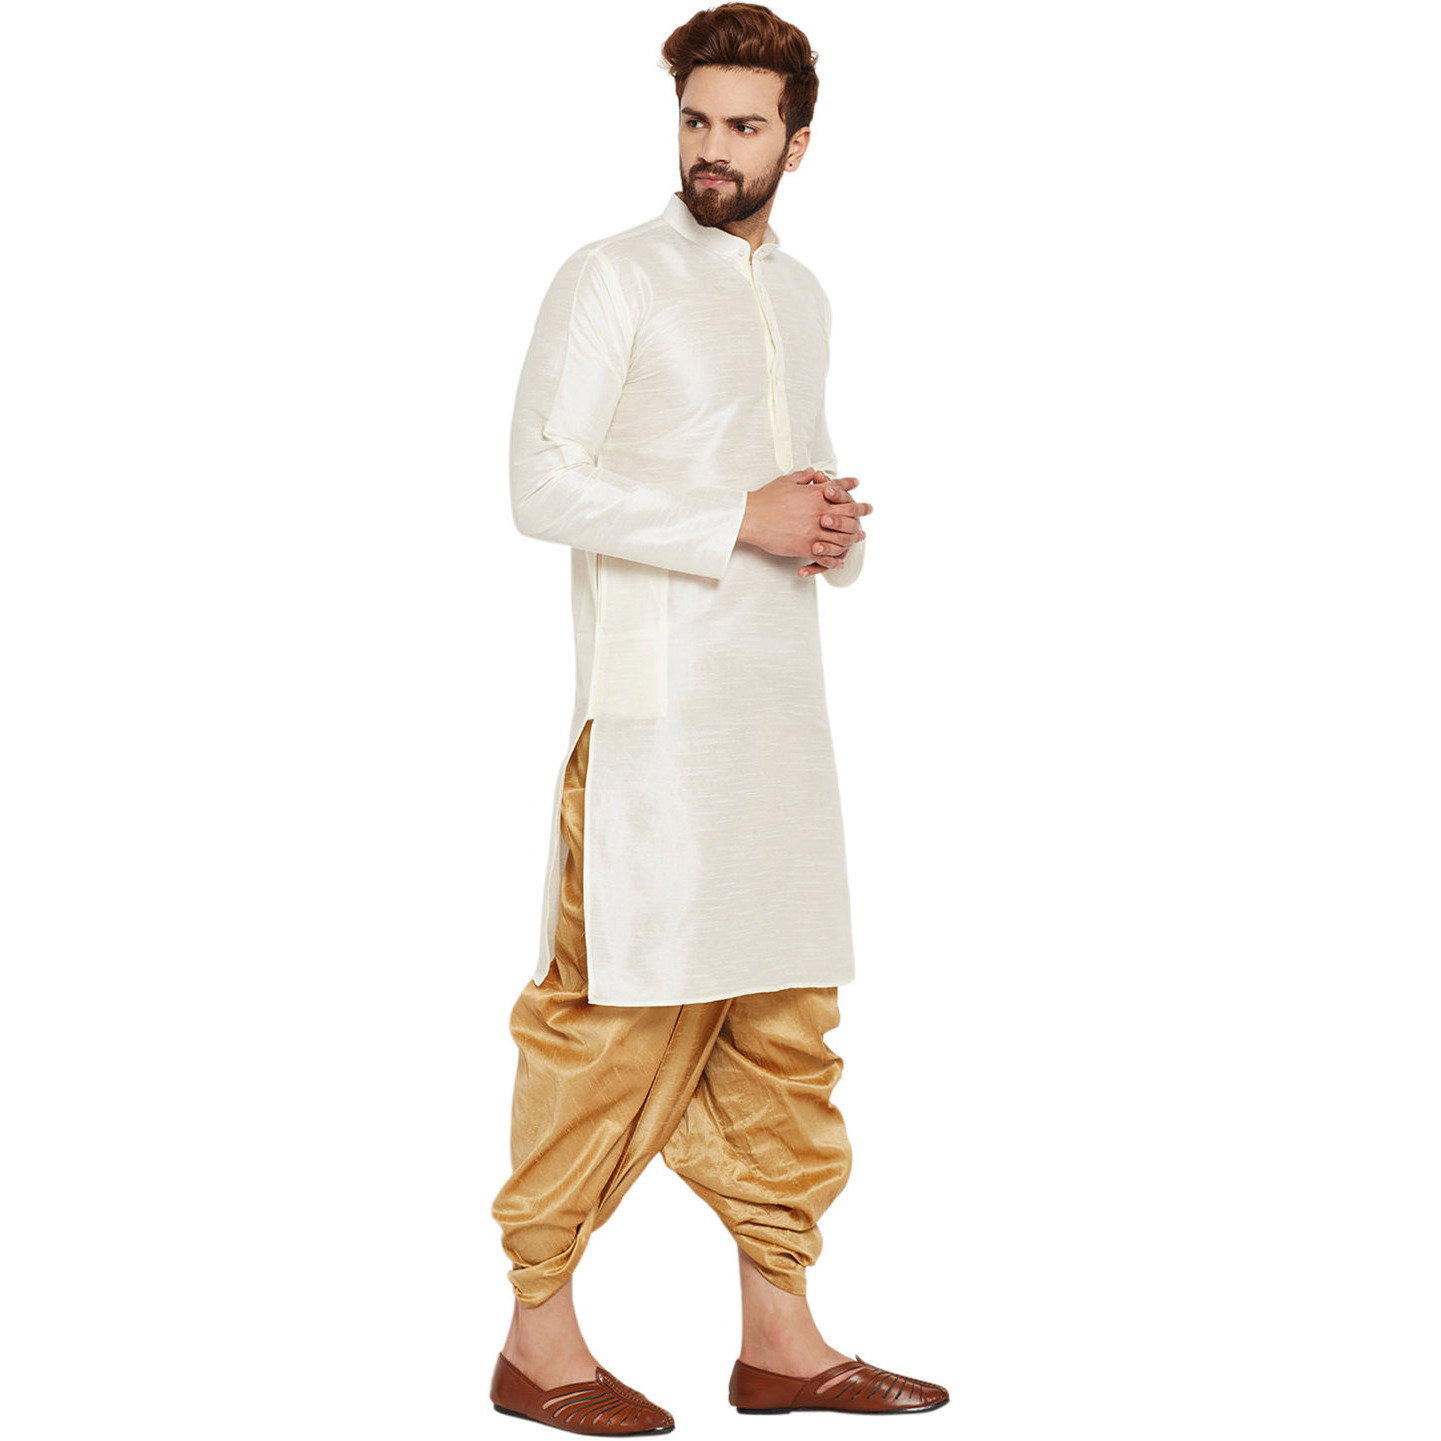 Sojanya (Since 1958)B Men's Traditional Ethnic Wear Dupion Silk Off-White and Gold Plain DhotiKurta Set Regular Fit